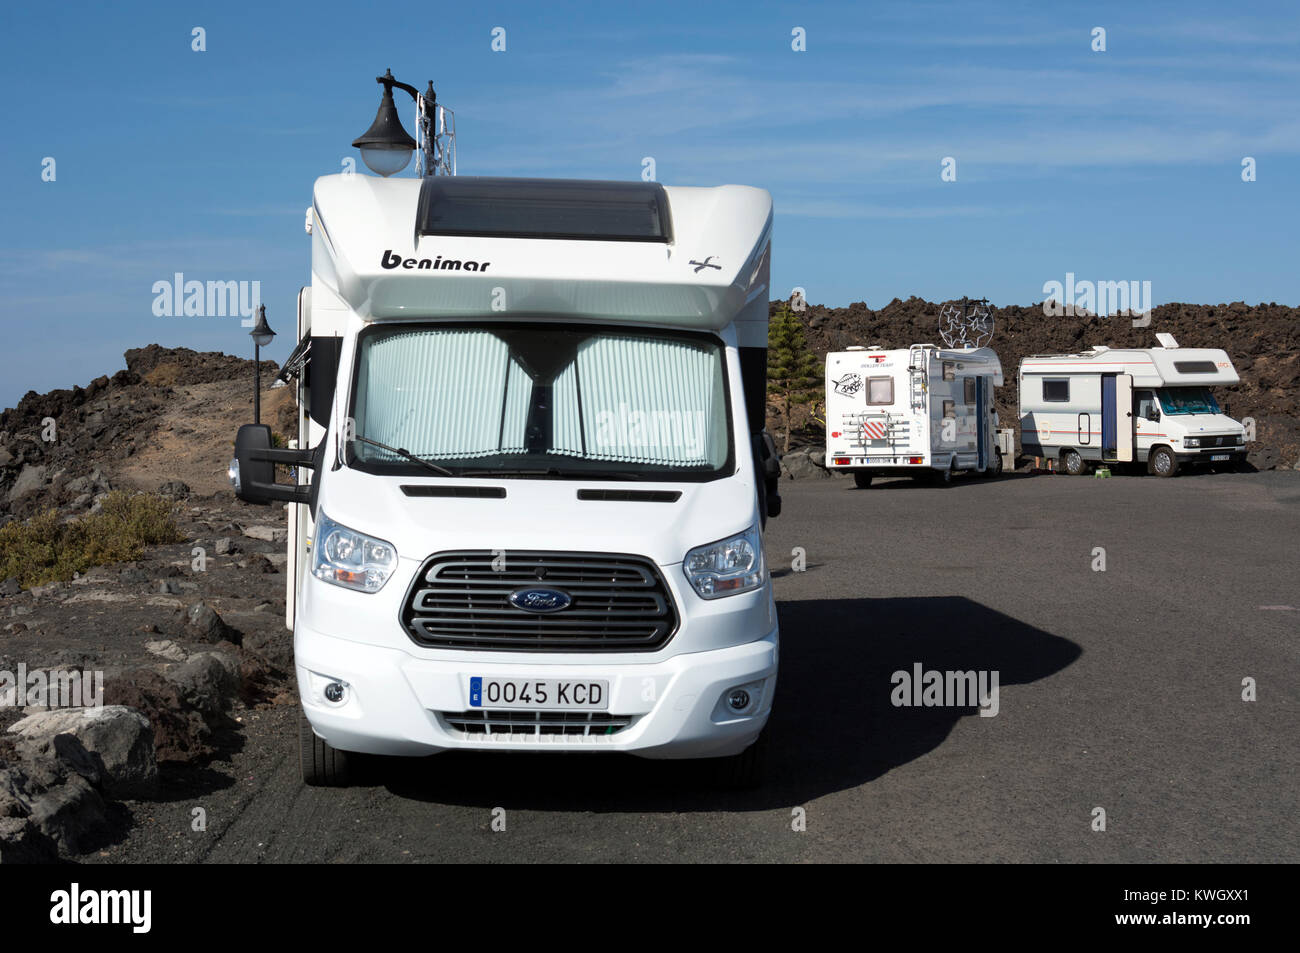 Caravans In The Canary Islands